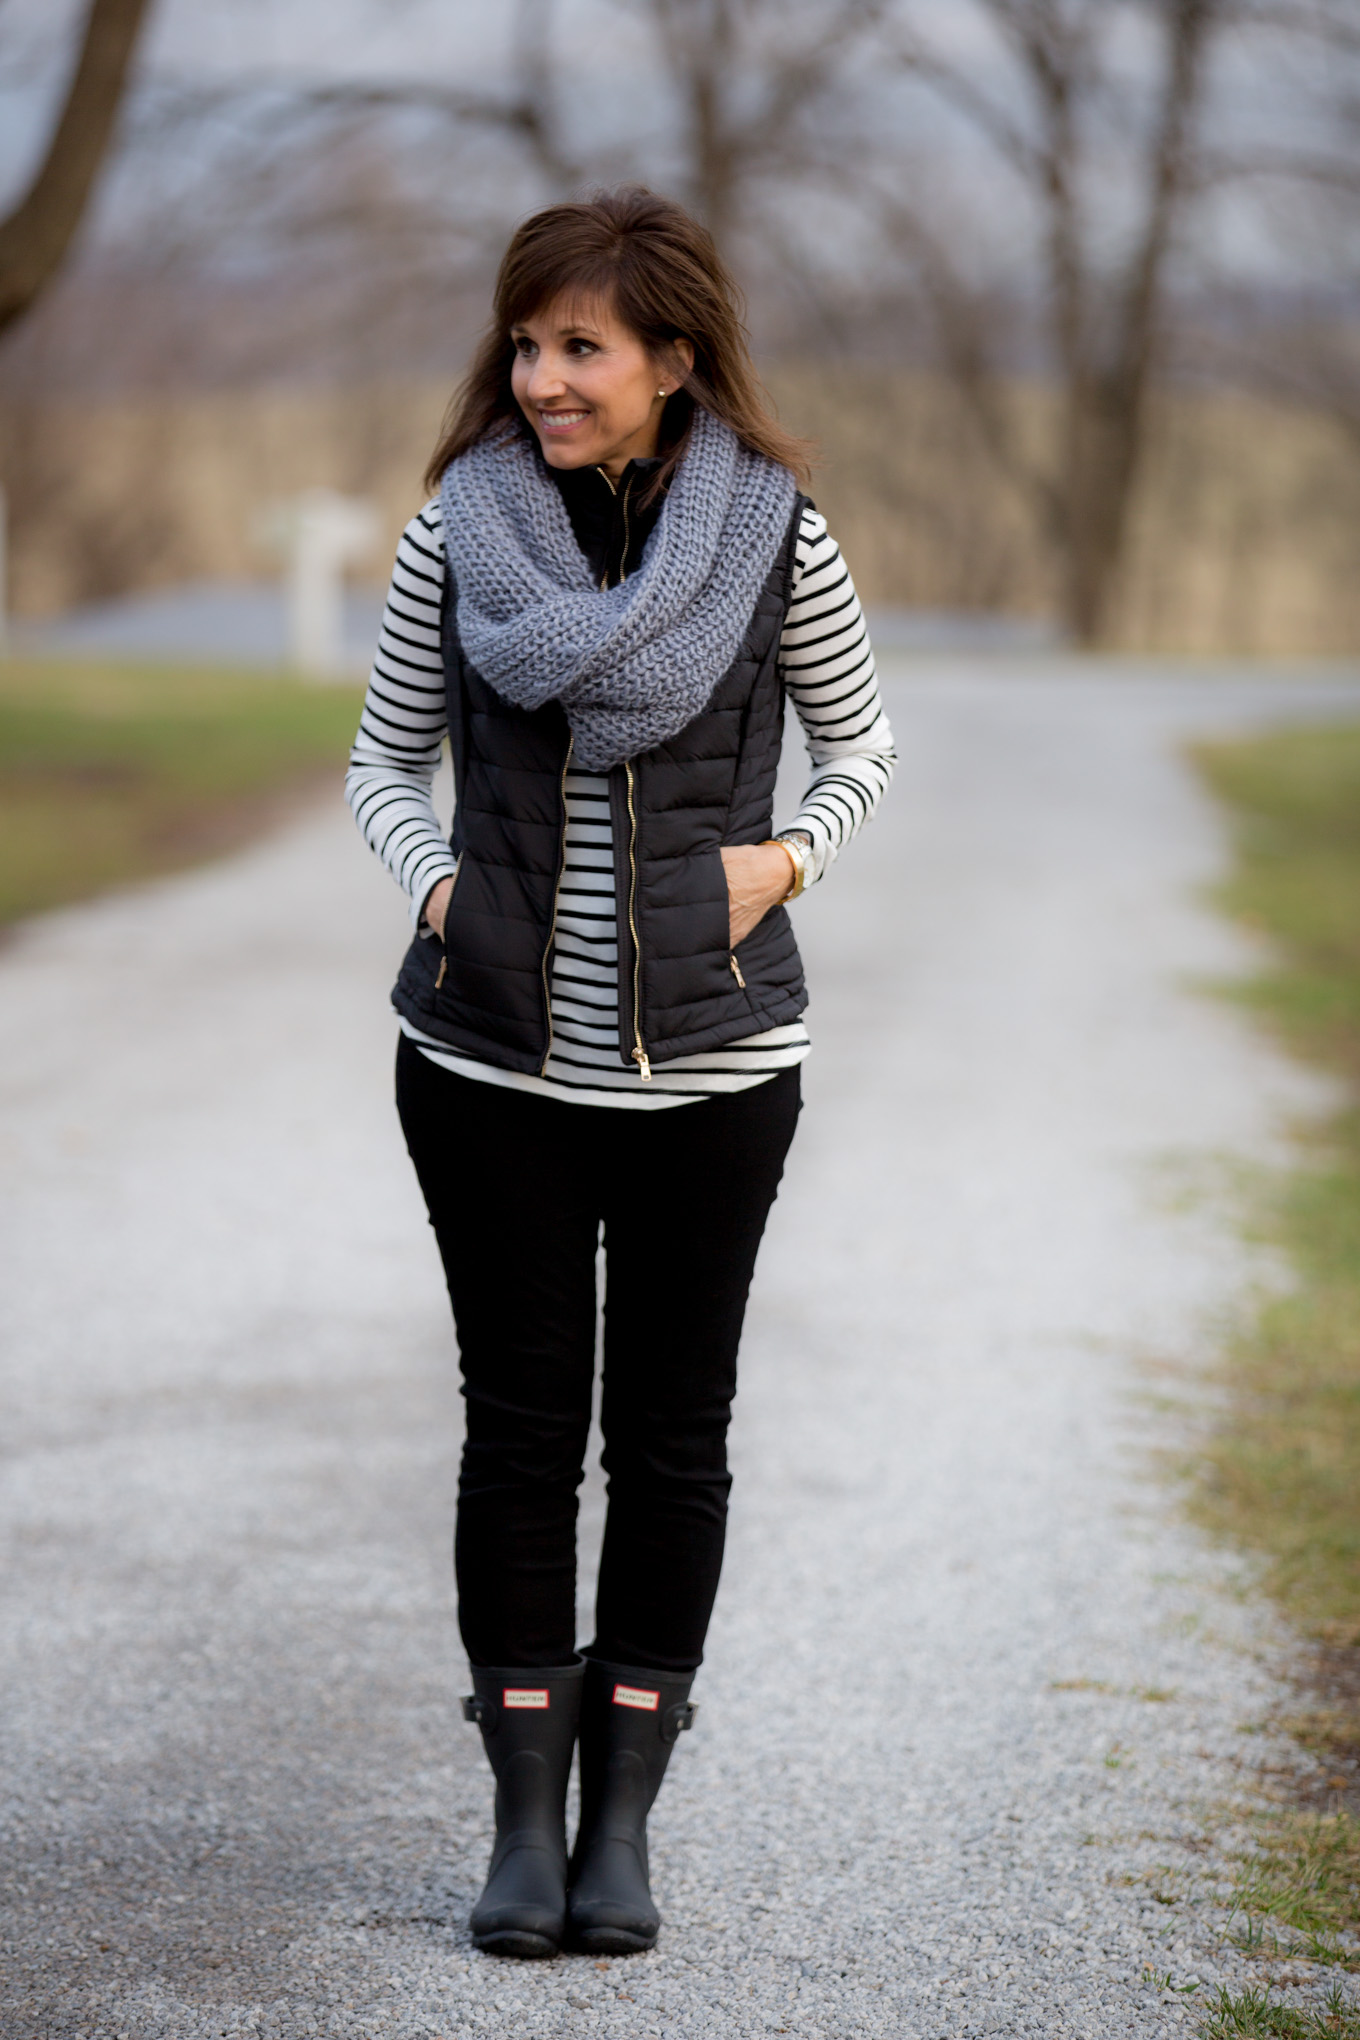 Over 40 fashion blogger, Cyndi Spivey, styling a black quilted vest.